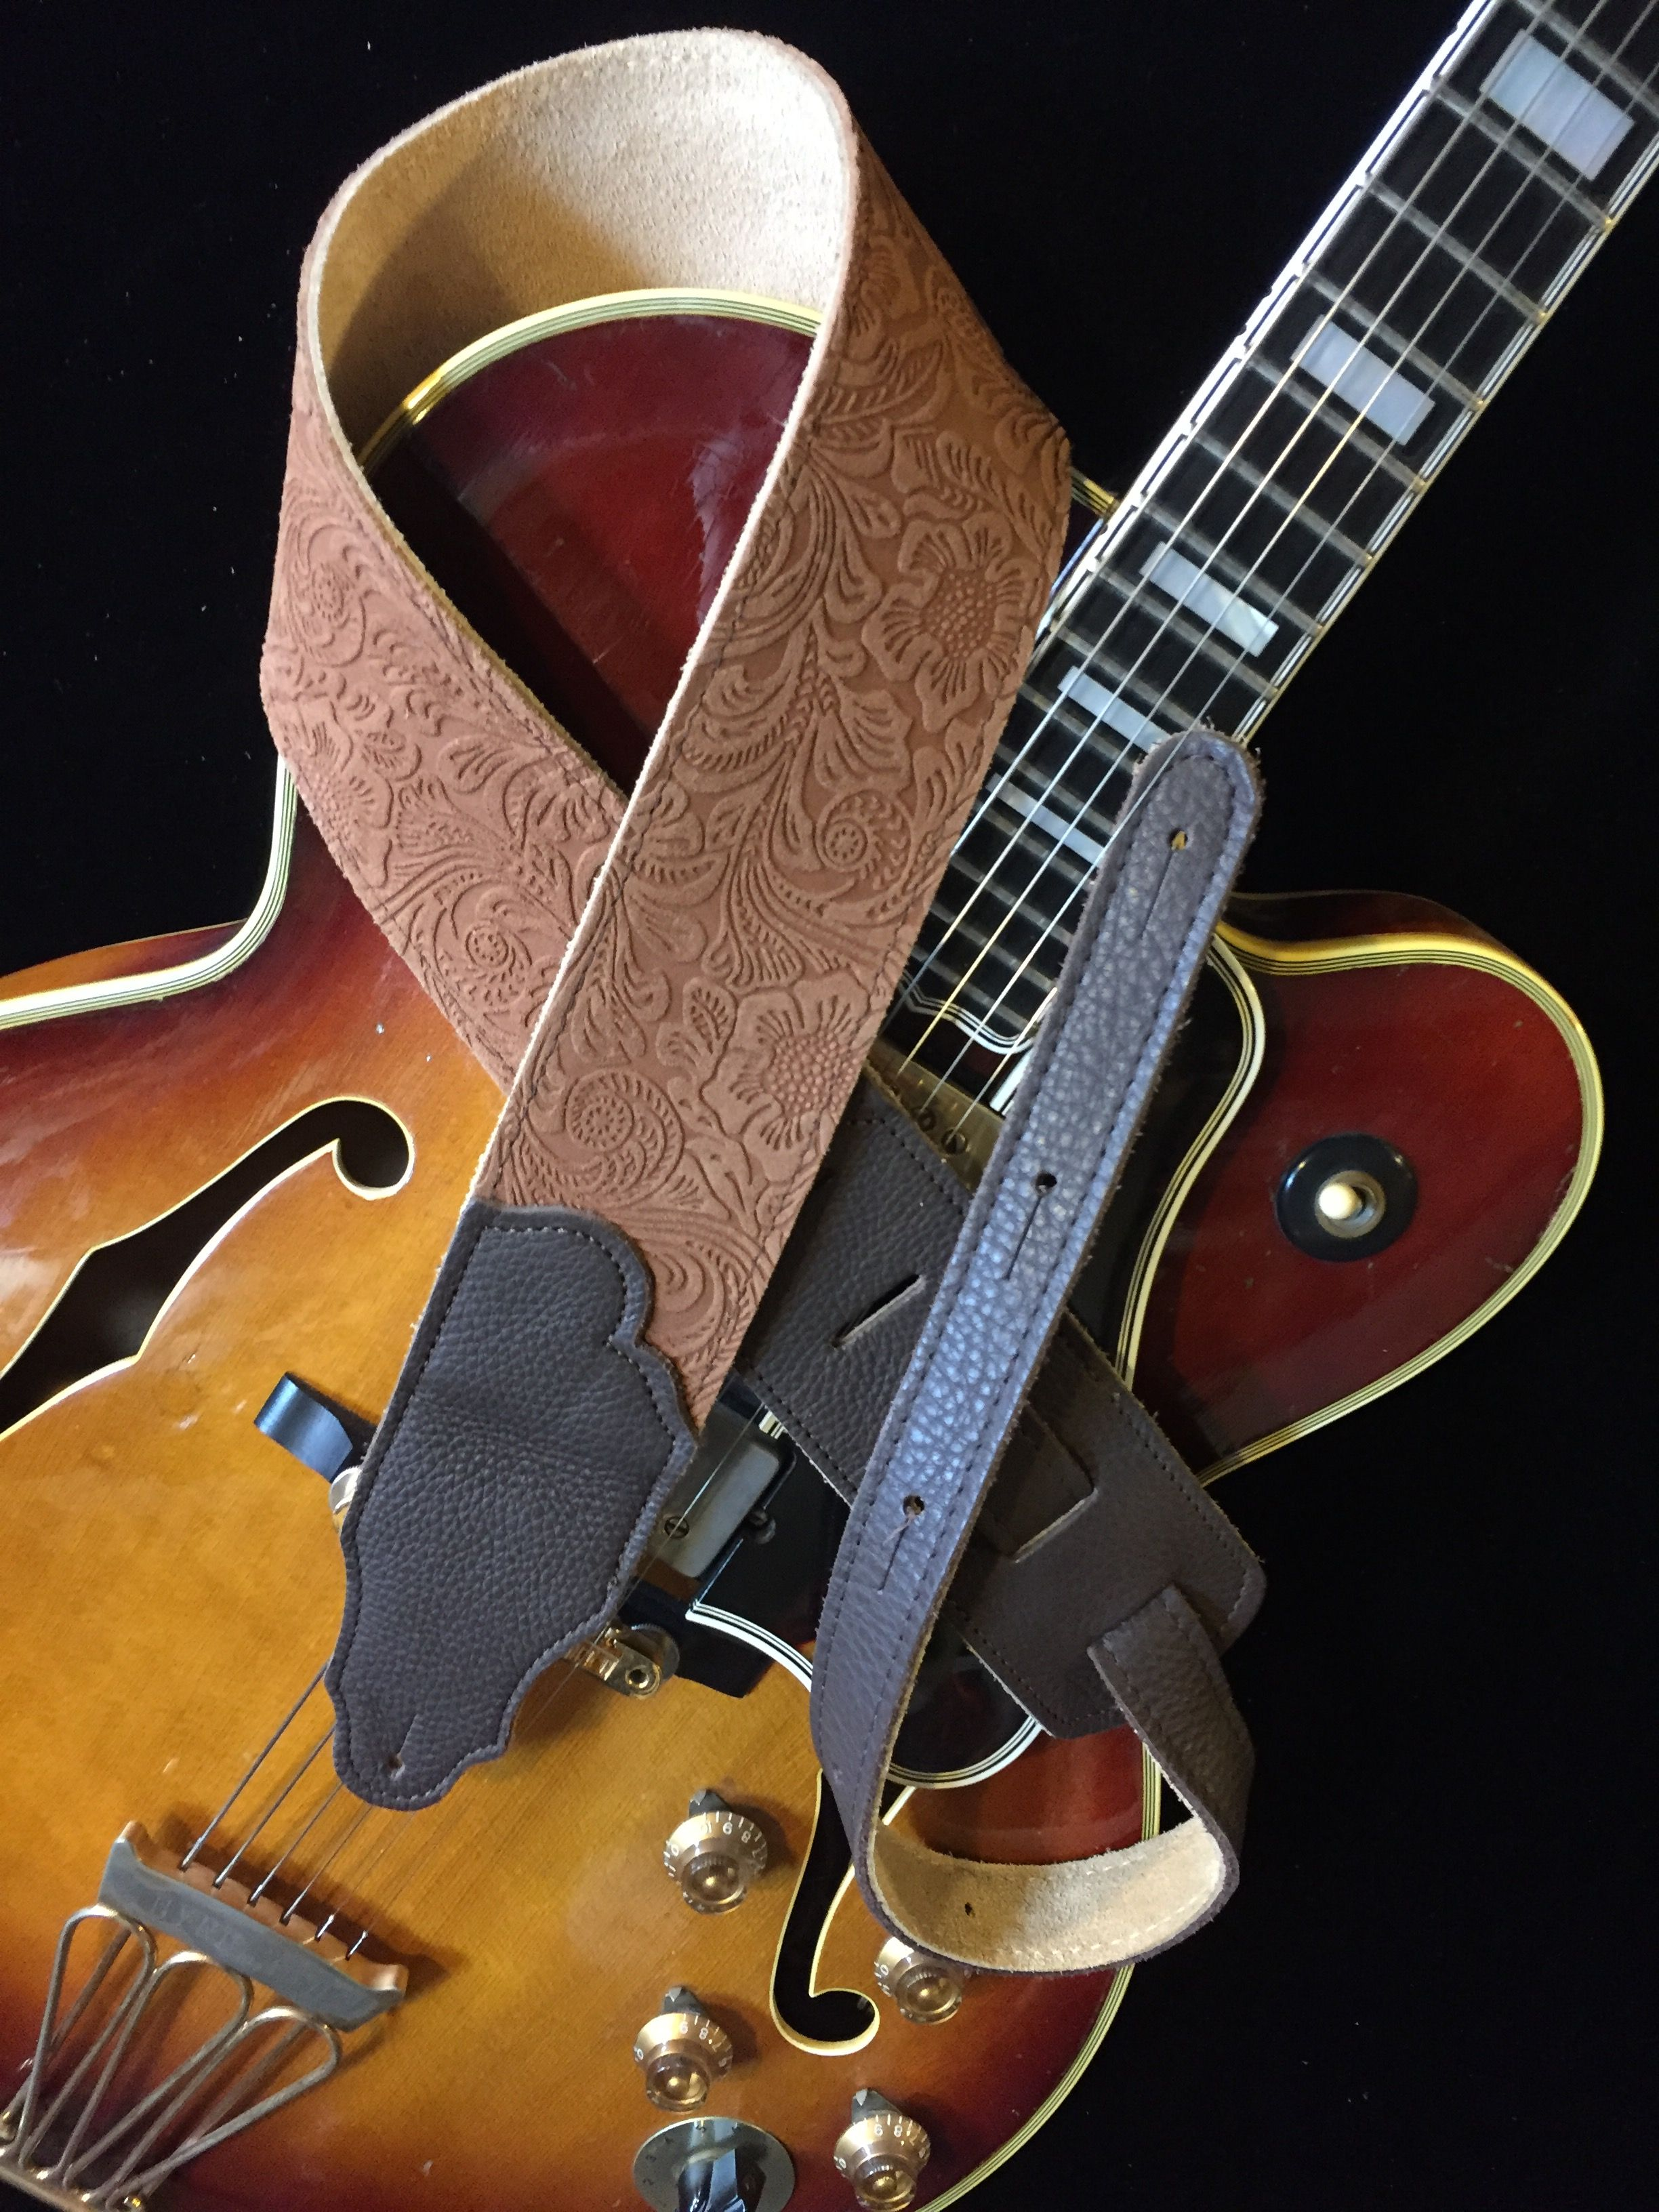 Embossed Suede Guitar Strap Guitar Strap Suede Leather Gloves